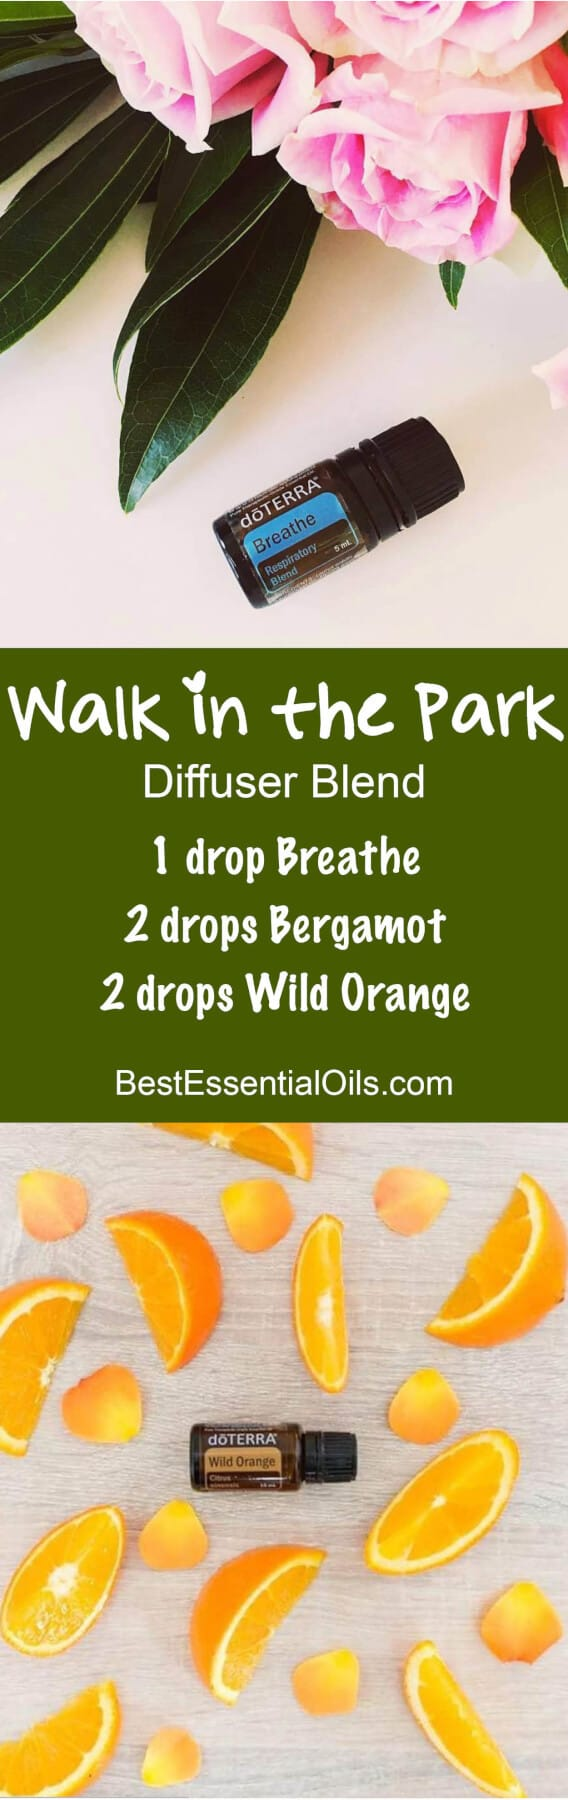 Walk in the Park doTERRA Diffuser Blend